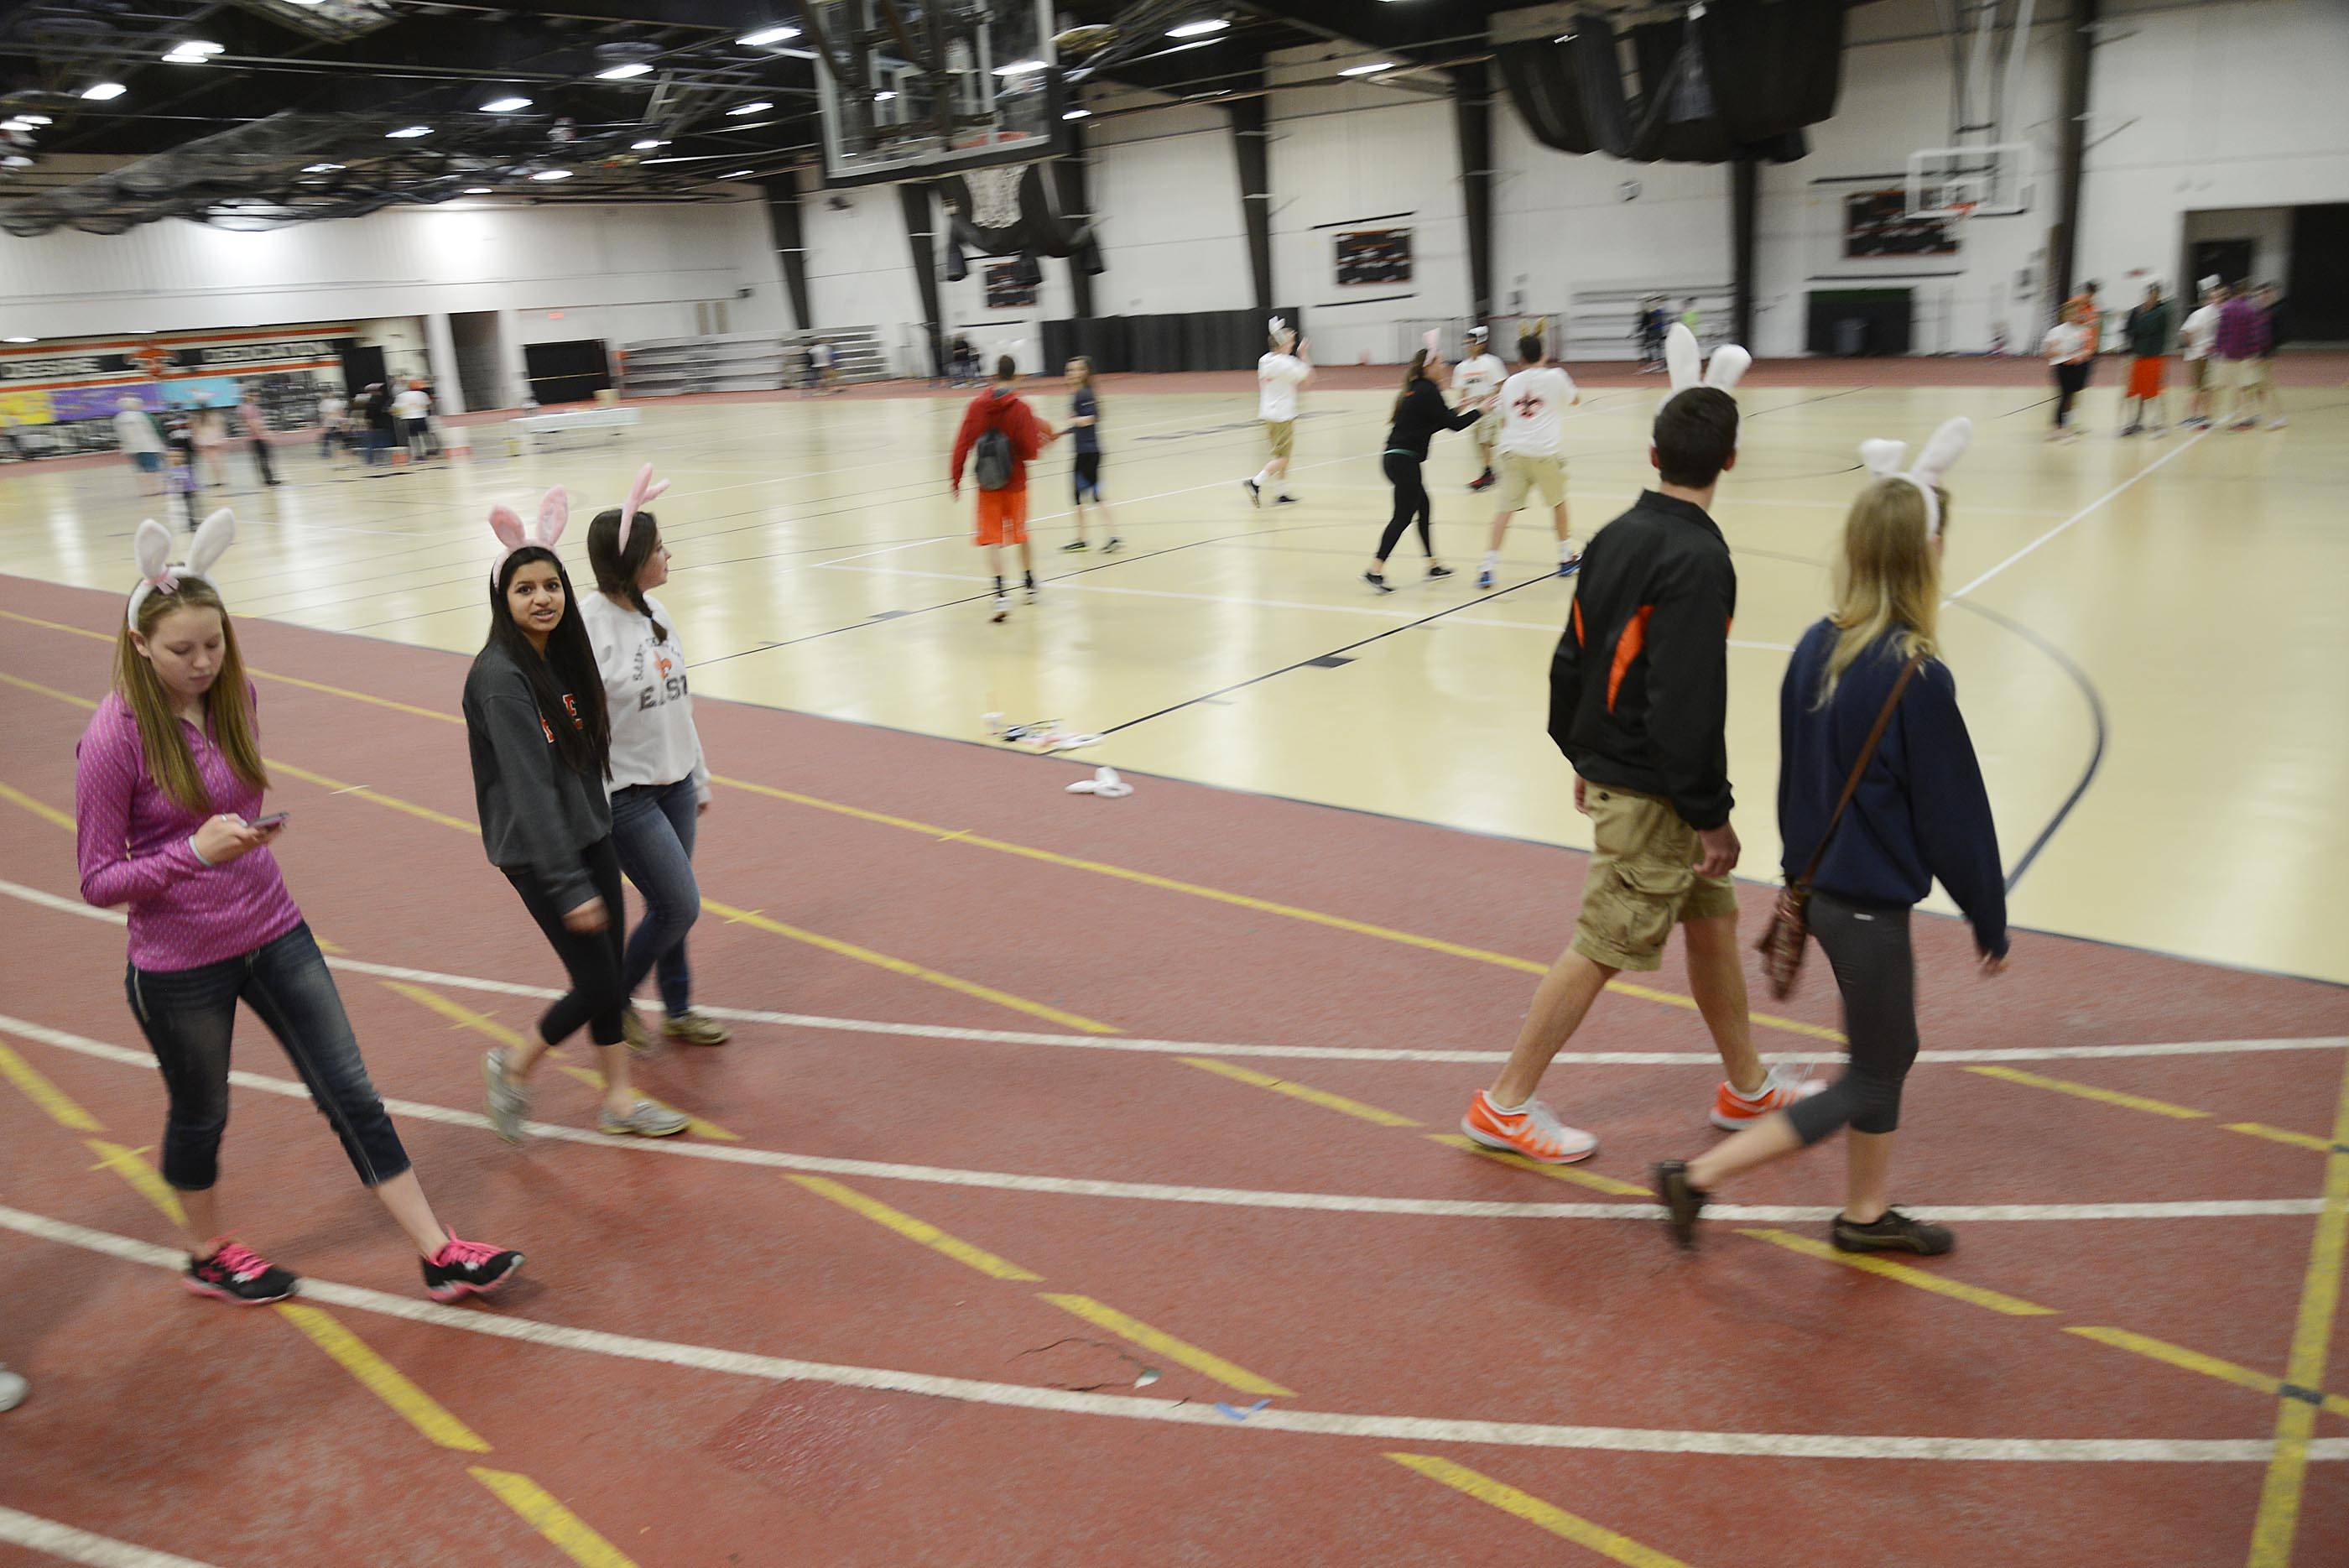 Students round the indoor track during a Juvenile Arthritis benefit walk organized by the St. Charles East High School student council Sunday at the school's Sports Center.